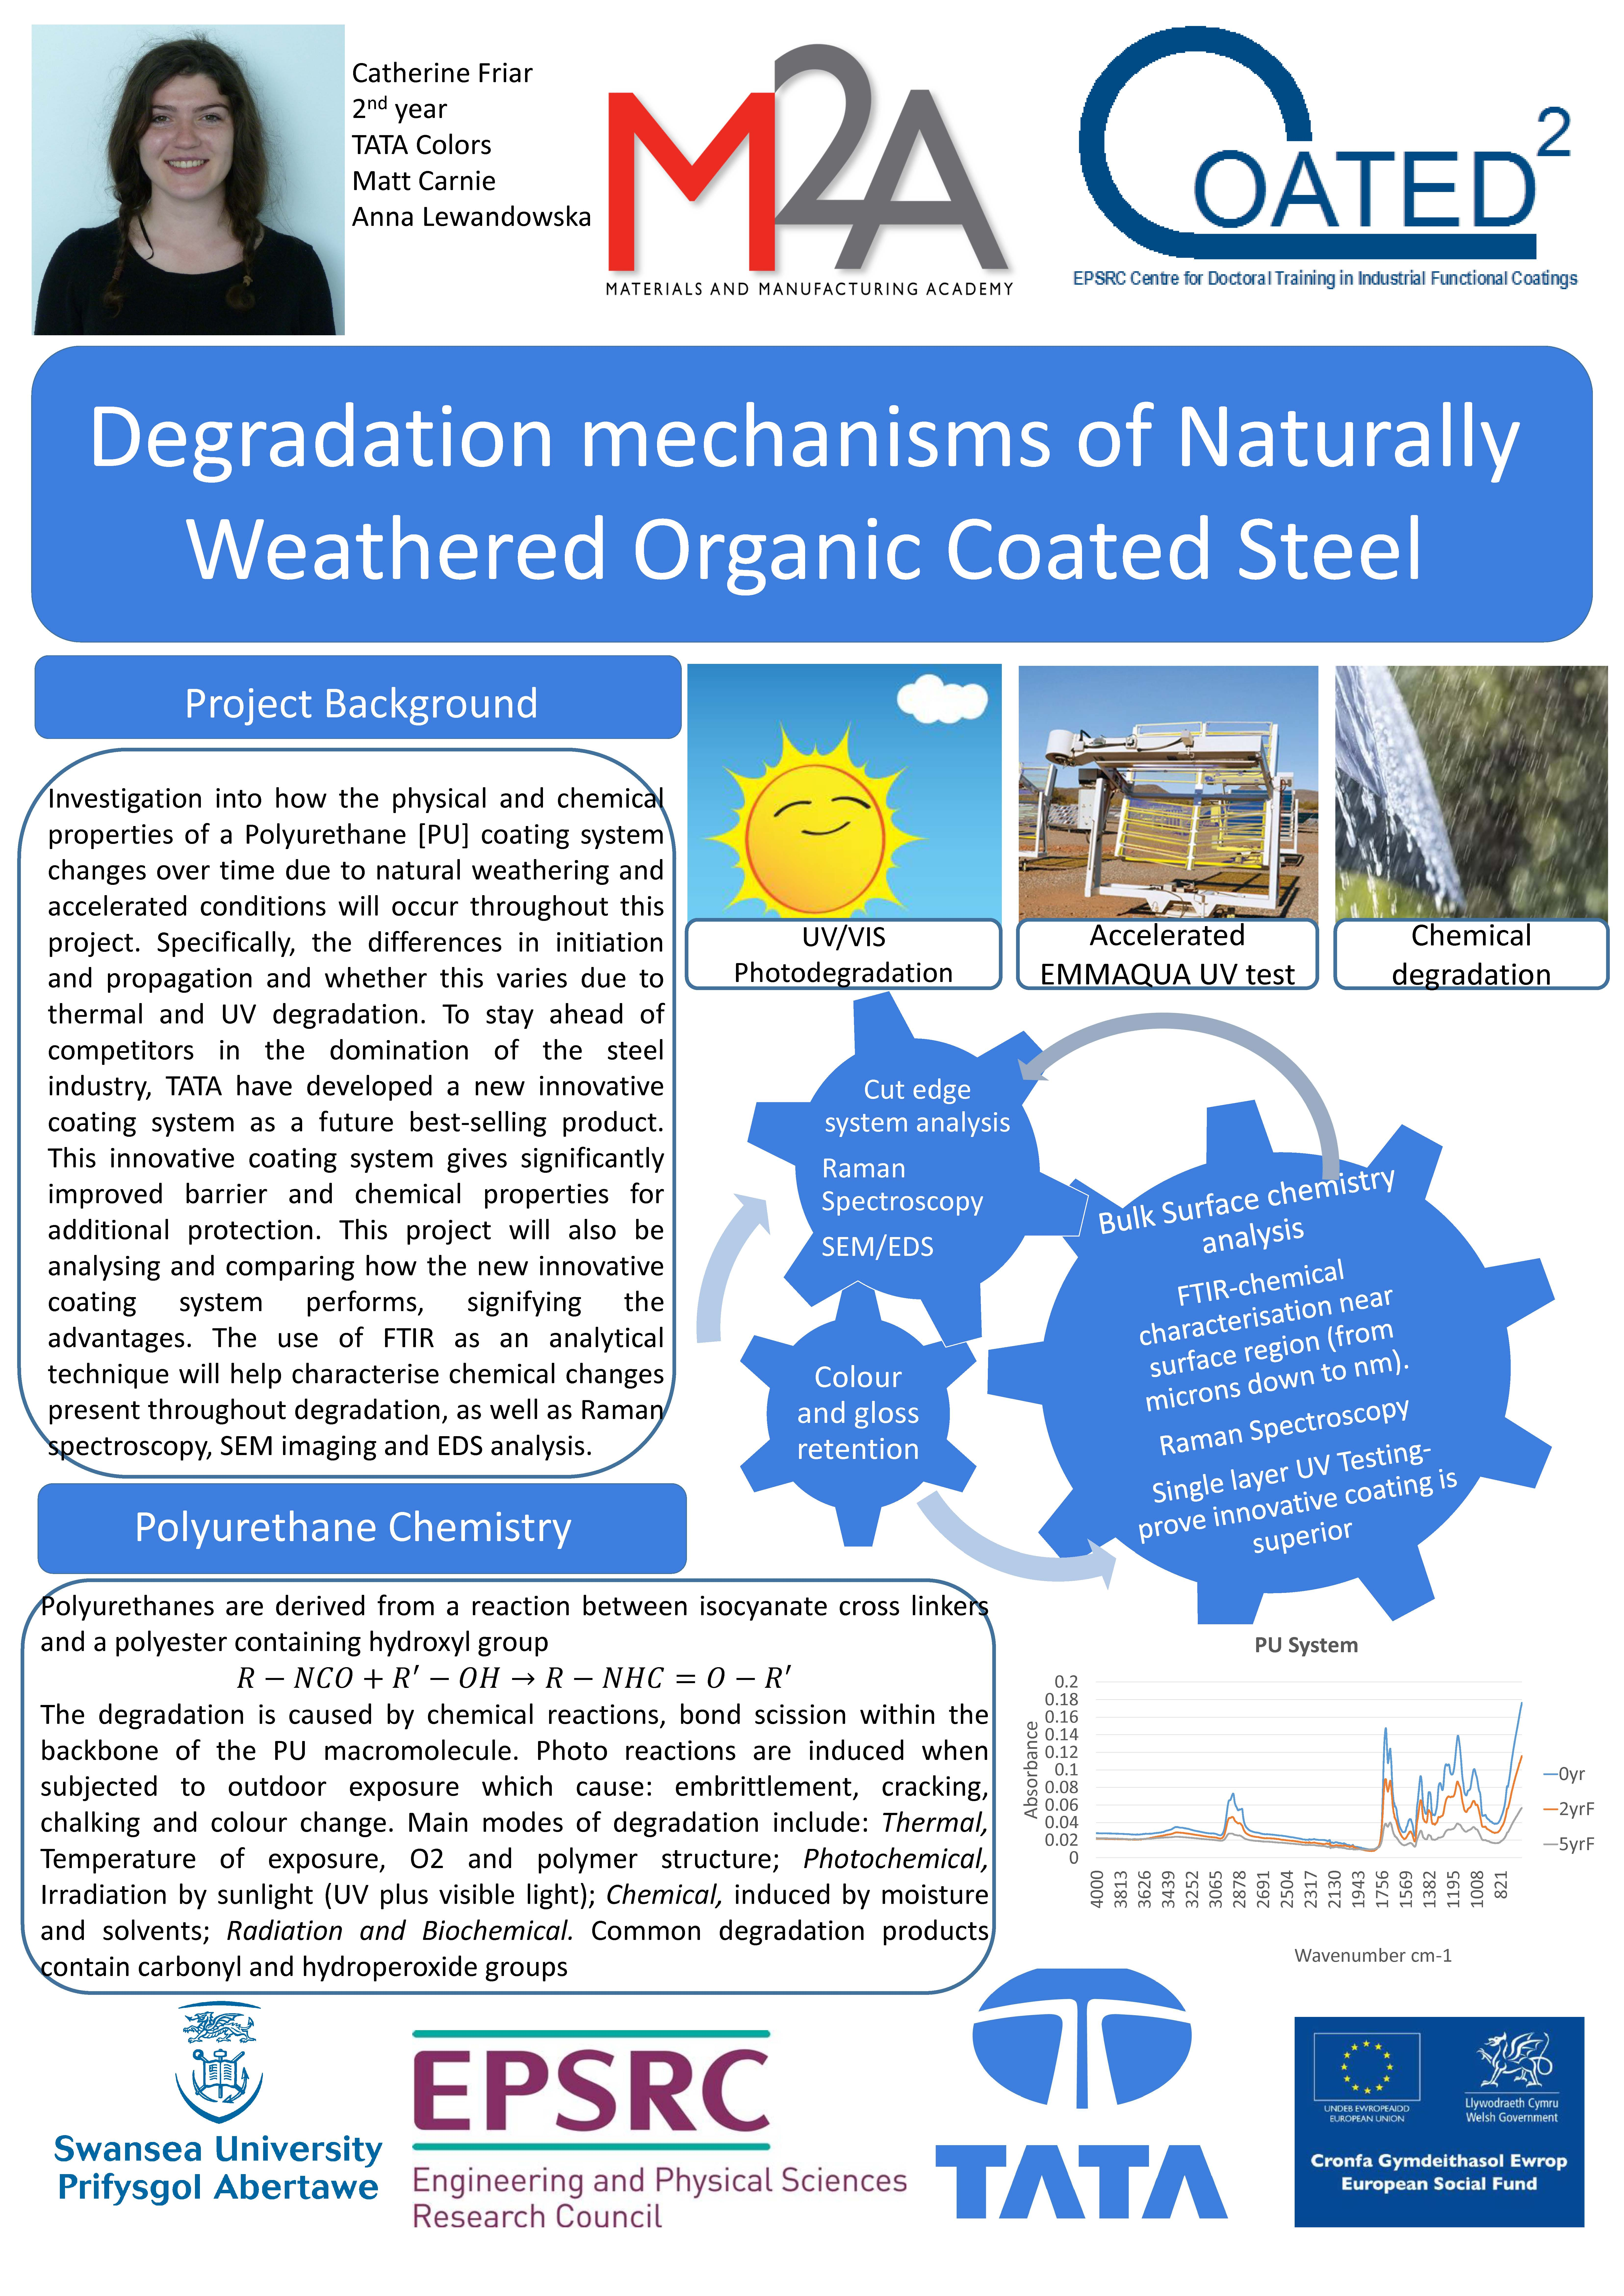 Degradation mechanisms of Naturally Weathered Organic Coated Steel